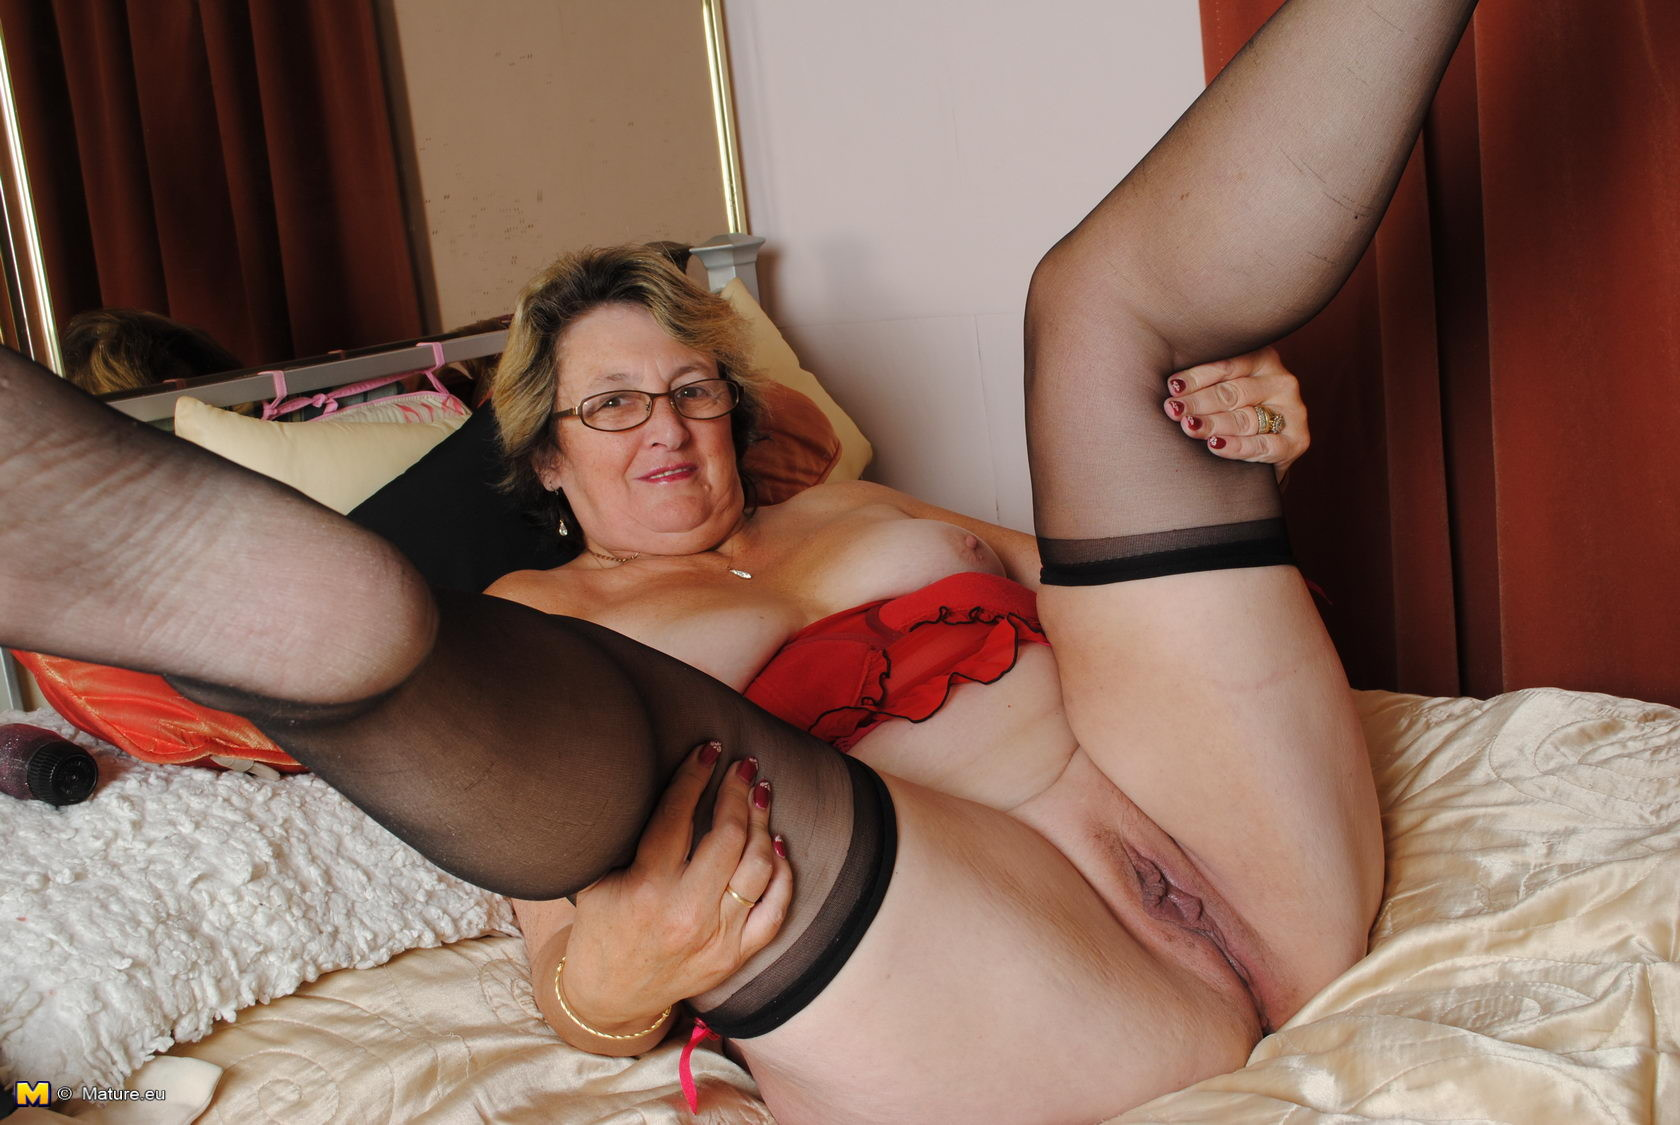 Old Lady Granny Pic, Free Women Gallery